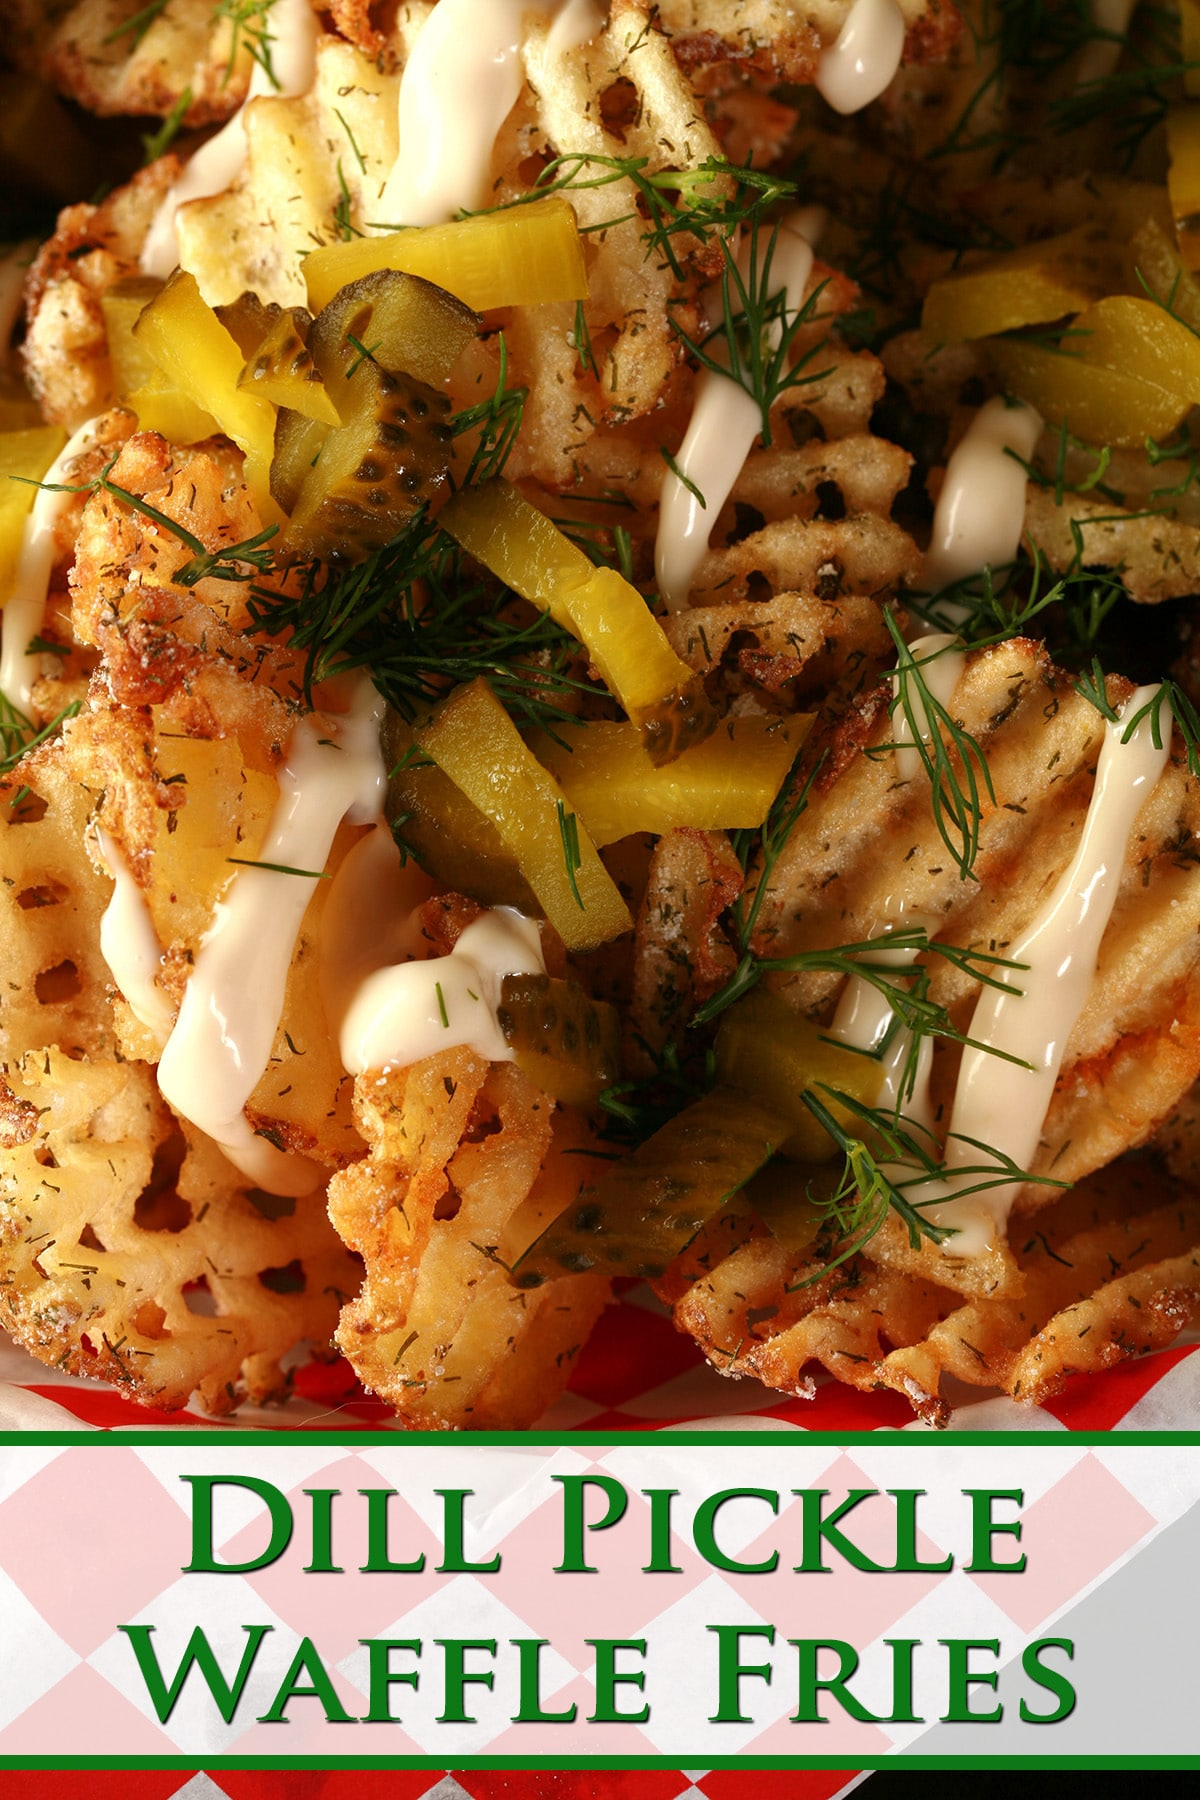 Waffle cut fries, in a white basket lined with red and white checkered paper. The fries are drizzled with roasted garlic aioi and topped with chopped dill and chopped pickles. Green Text overlay says Dill Pickle Waffle Fries.